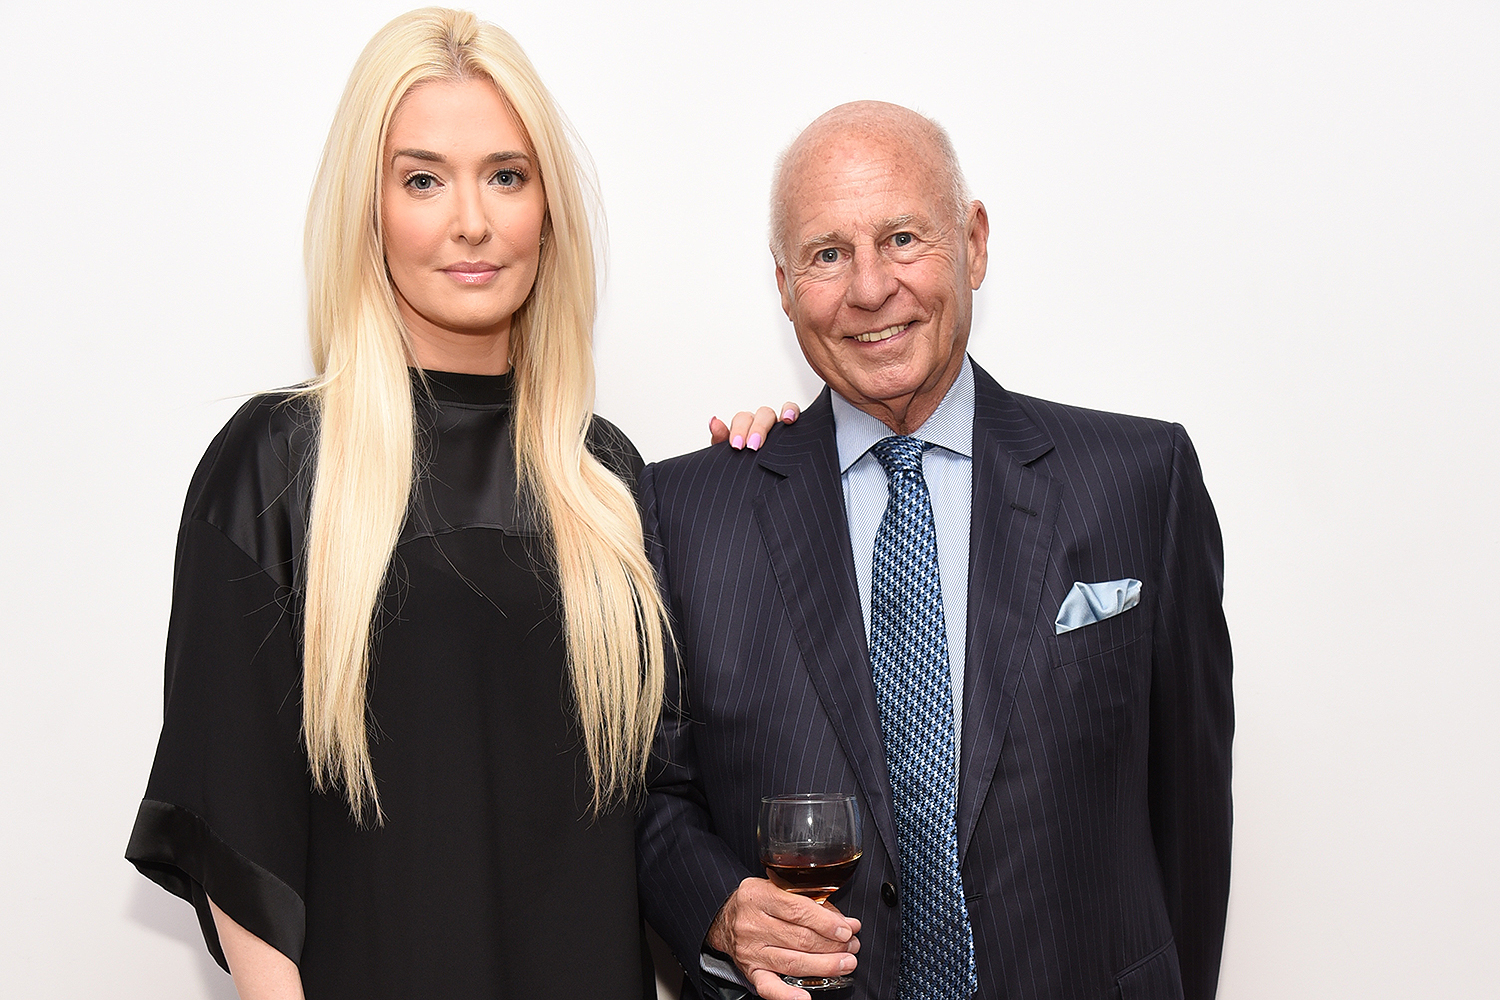 RHOBH Season 11 Trailer Addresses Erika Girardi's Rocky Divorce from Tom: 'I Am Not a Liar'